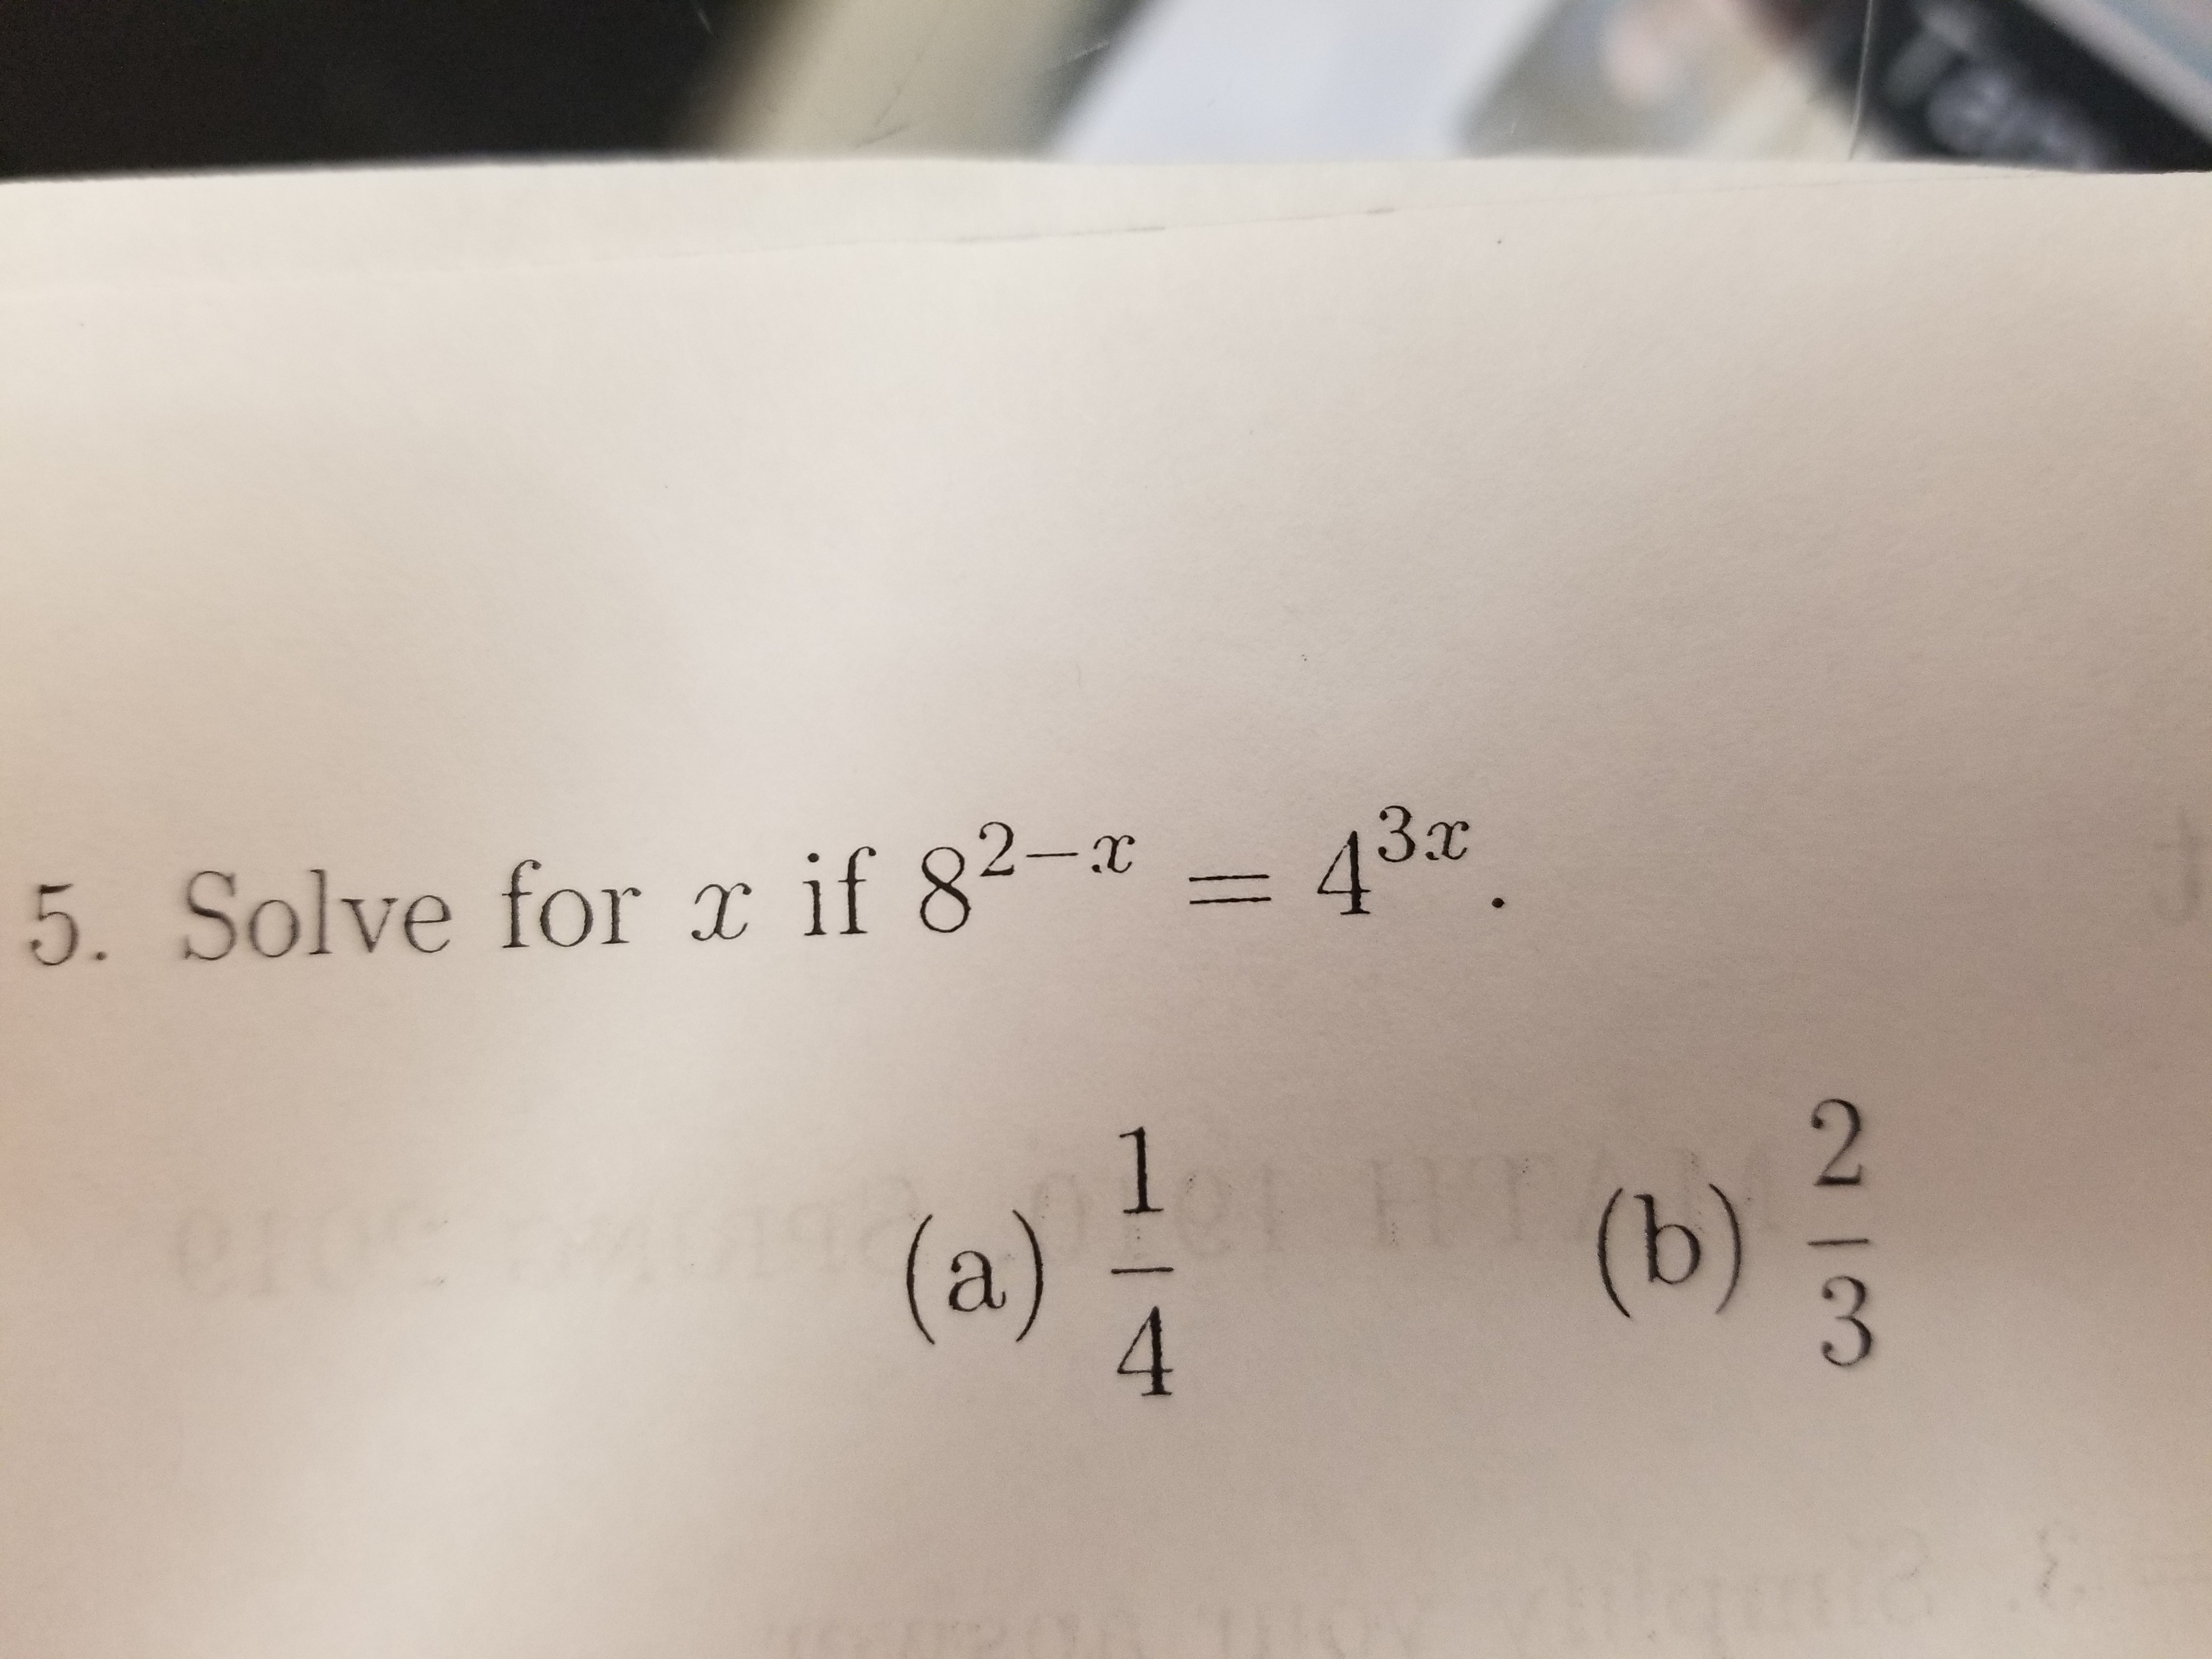 5. Solve for a if 824 5. Solve for if 82-2. 43x. 4